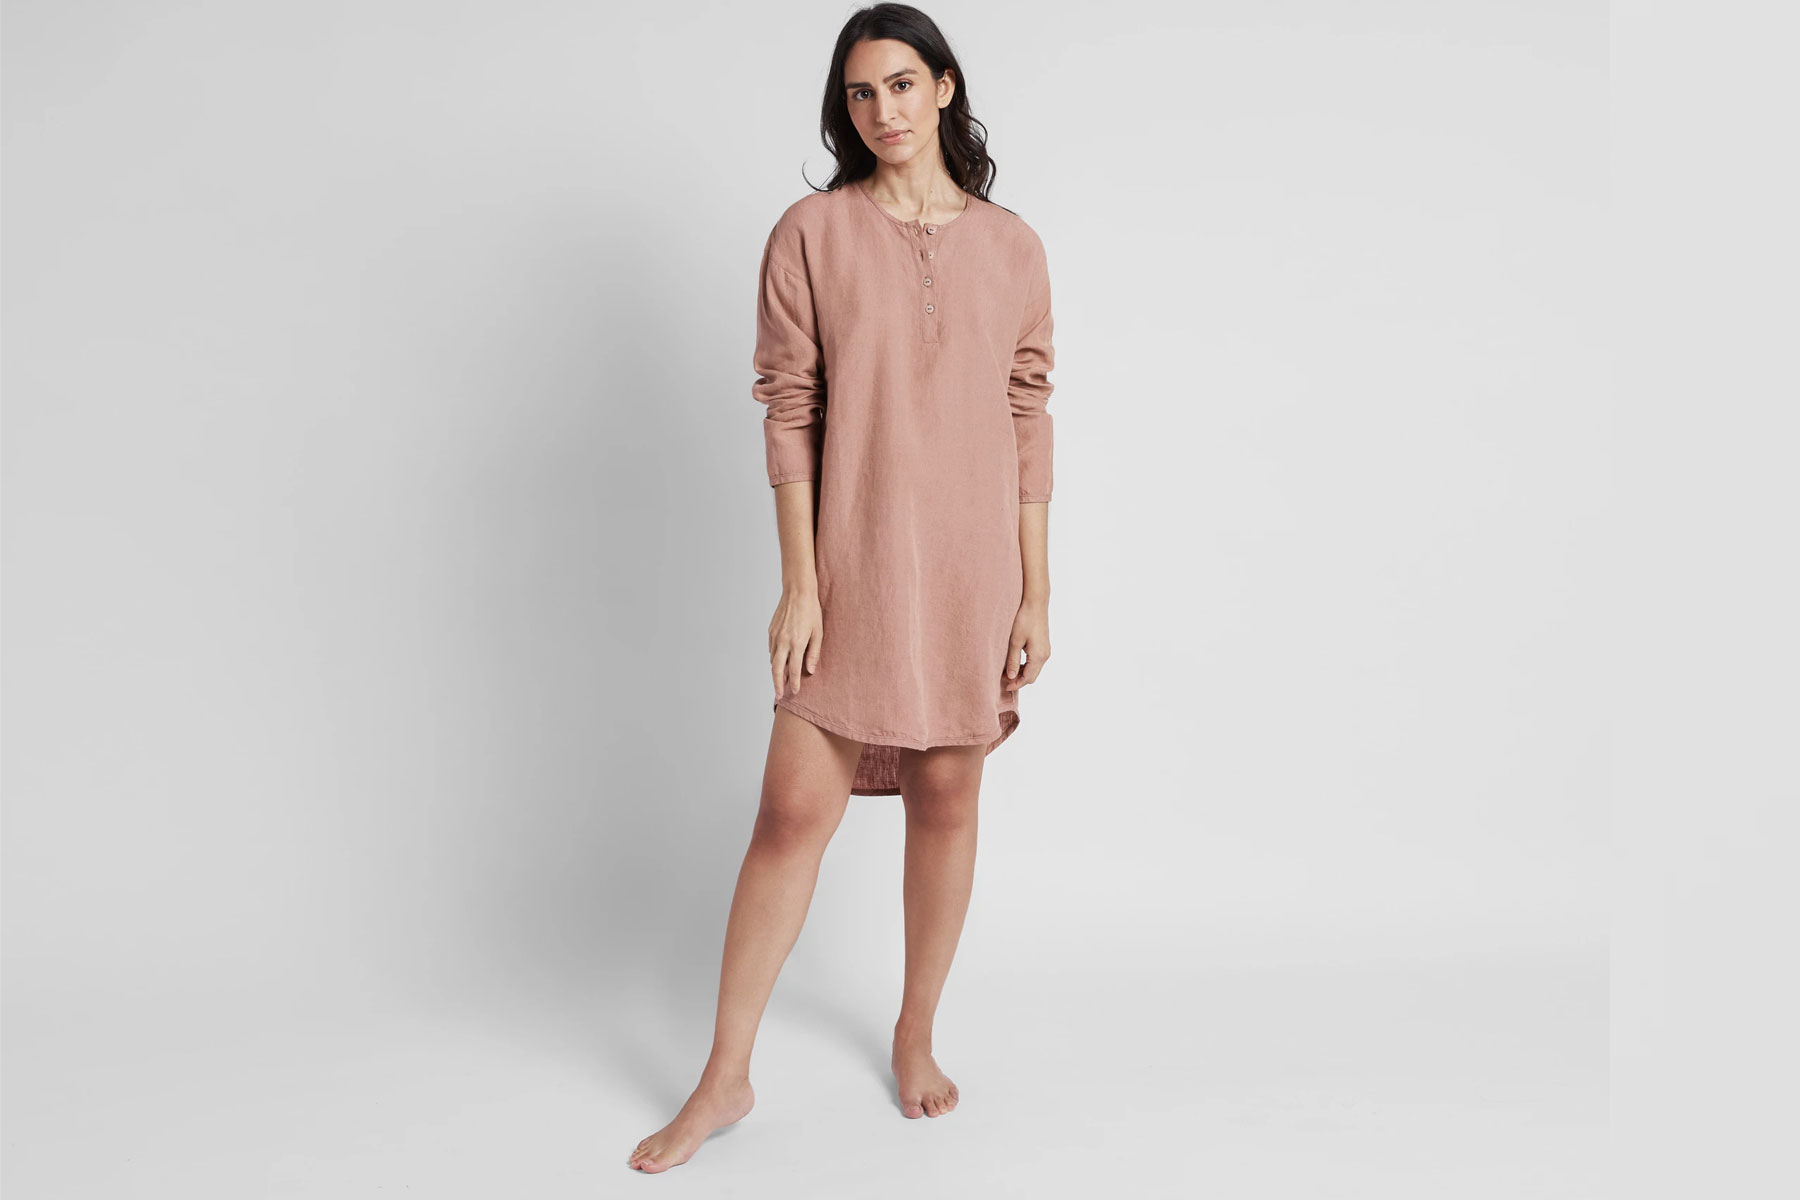 Woman wearing pink linen sleep shirt